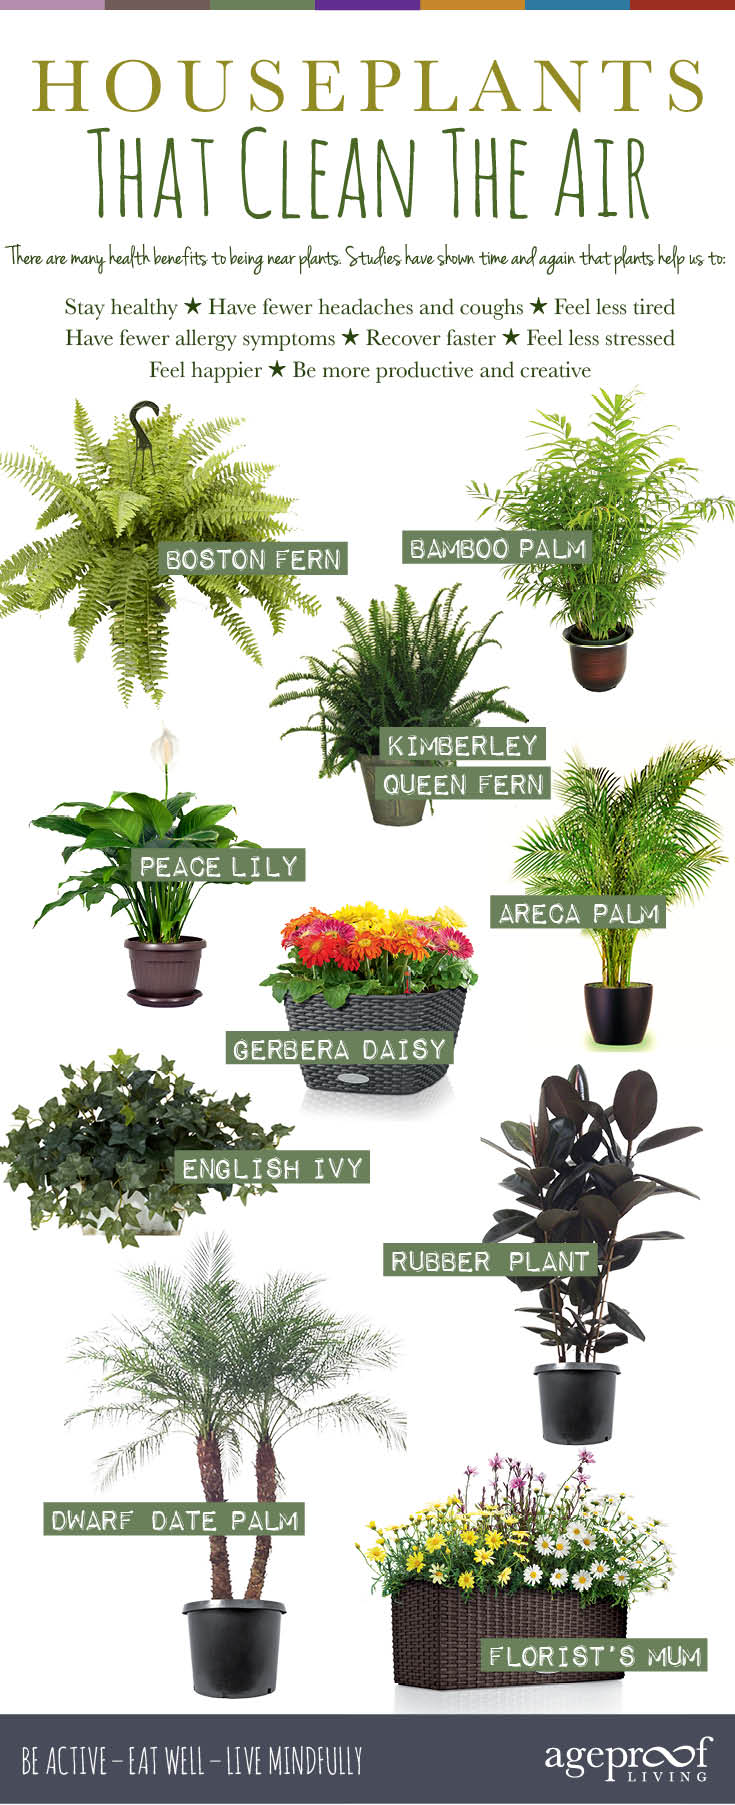 10 houseplants that clean the air urban planters - House plants names and pictures ...